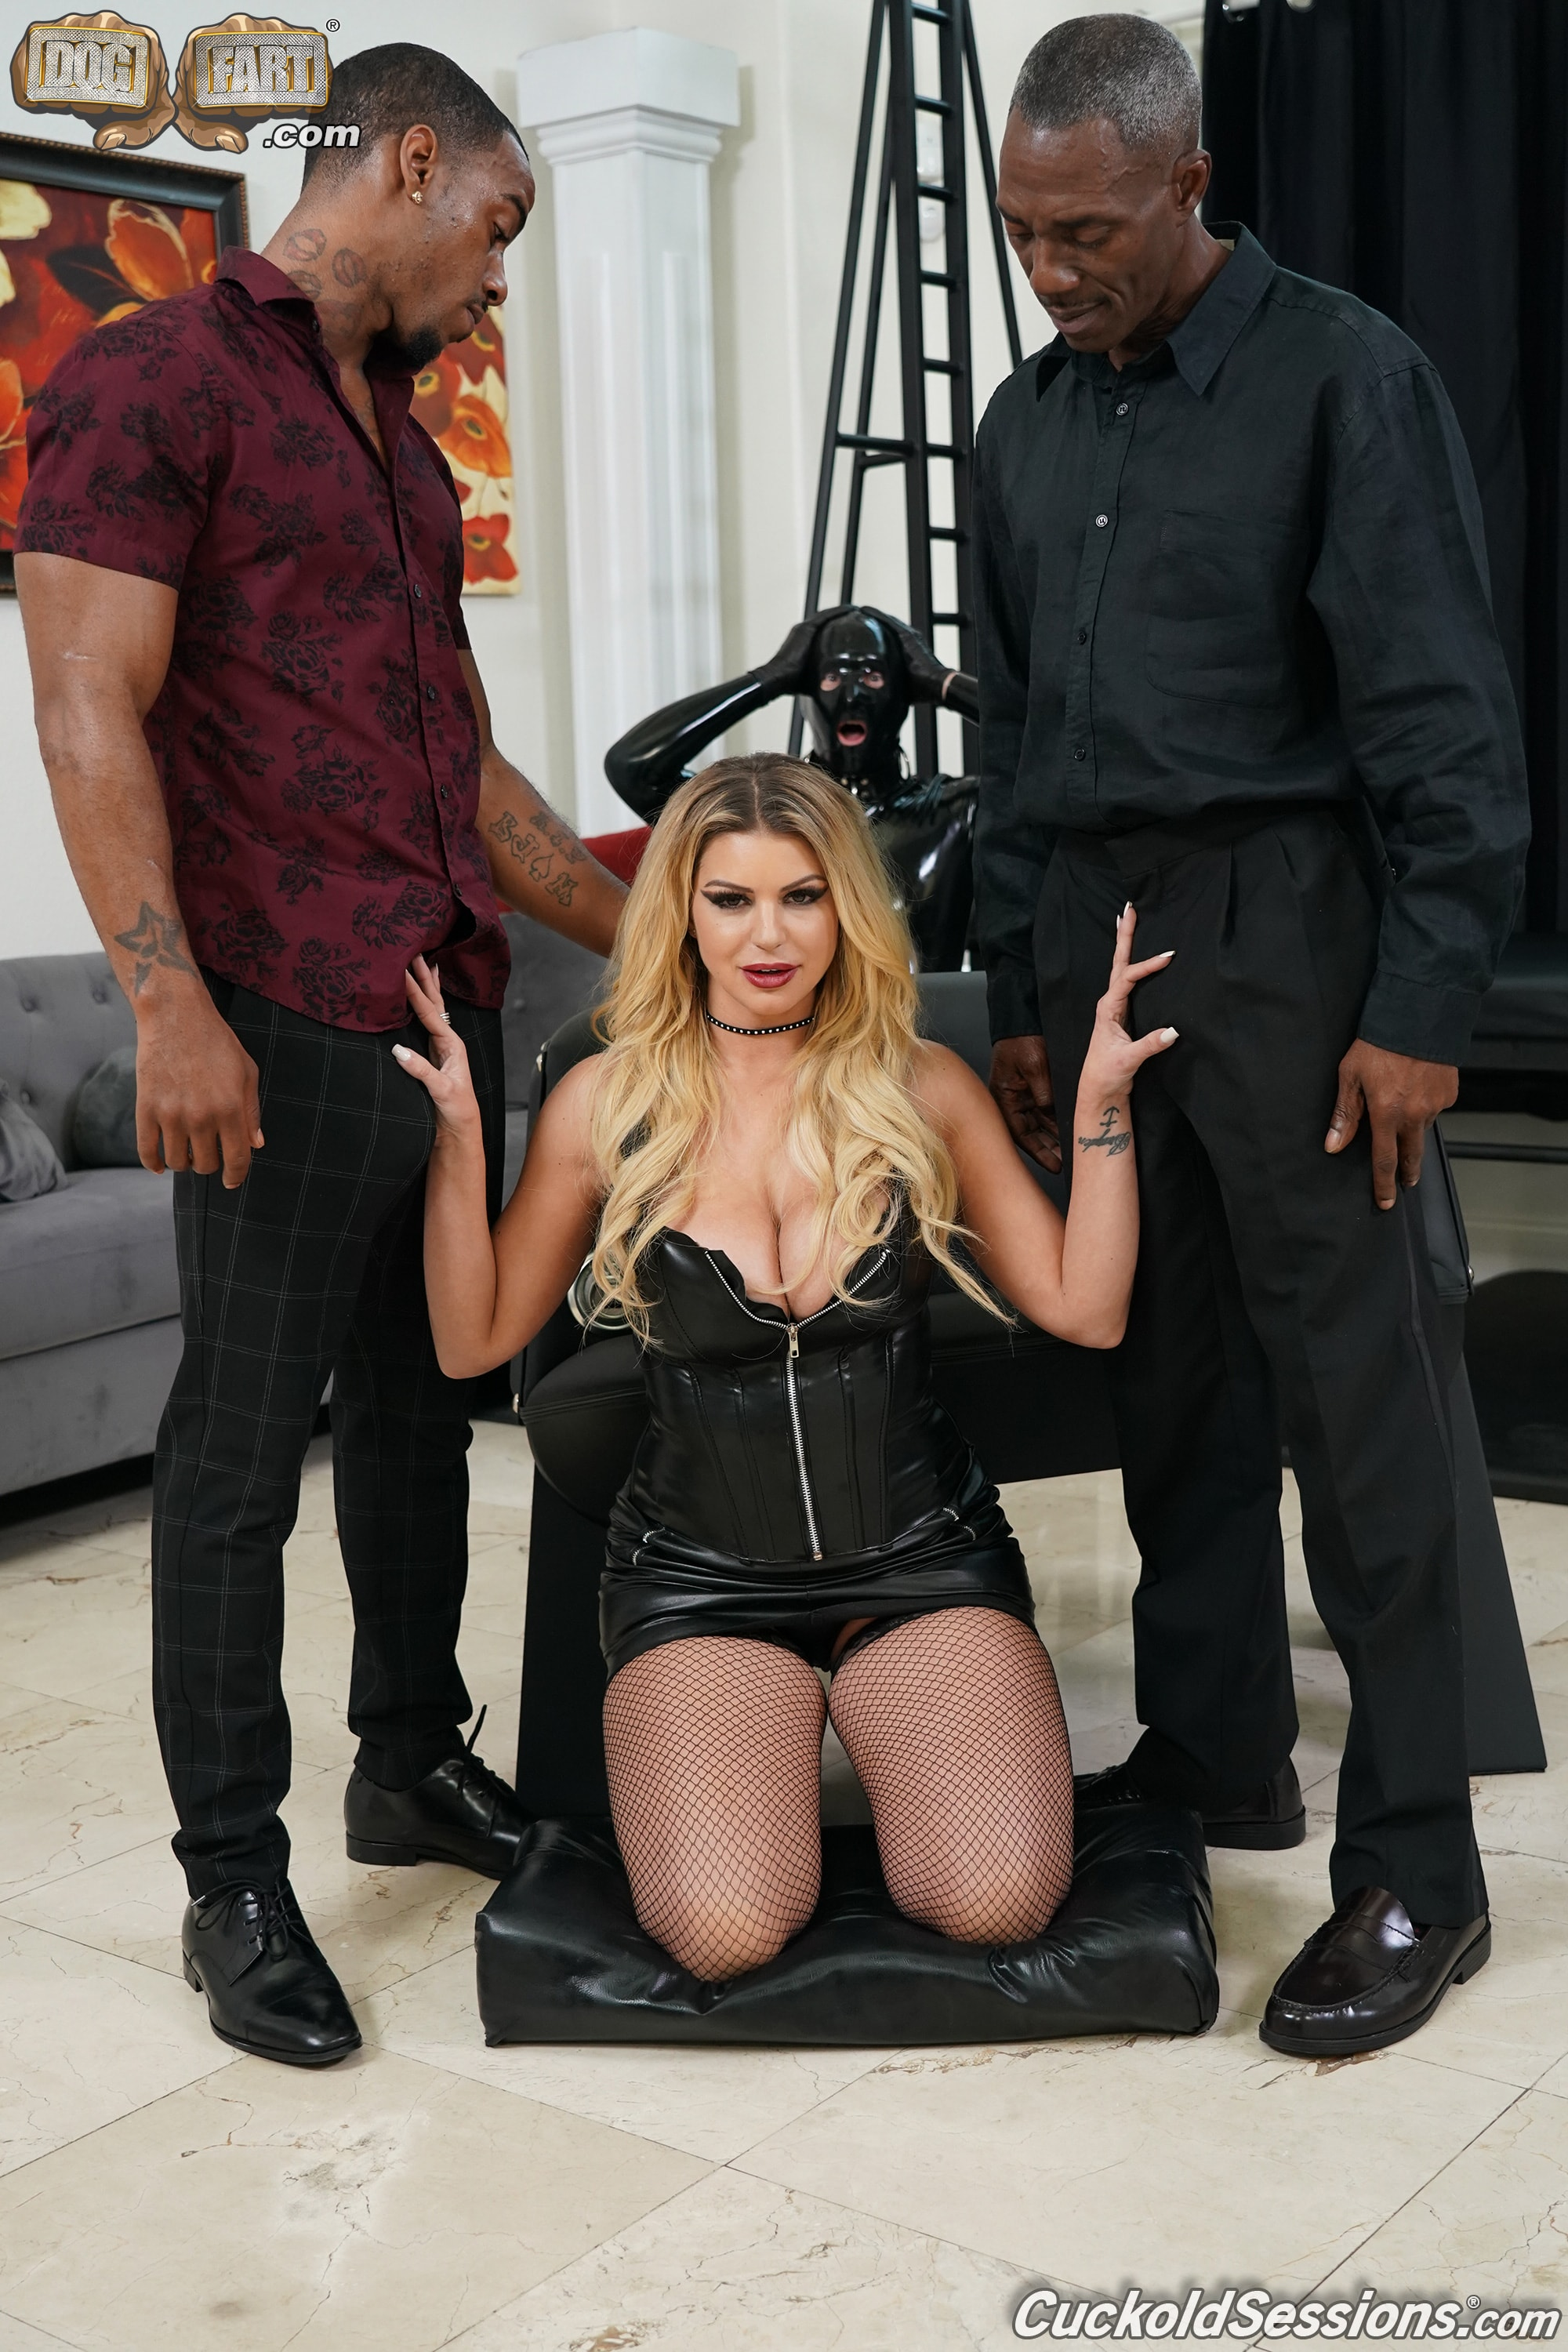 Dogfart '- Cuckold Sessions - Scene 4' starring Brooklyn Chase (Photo 12)